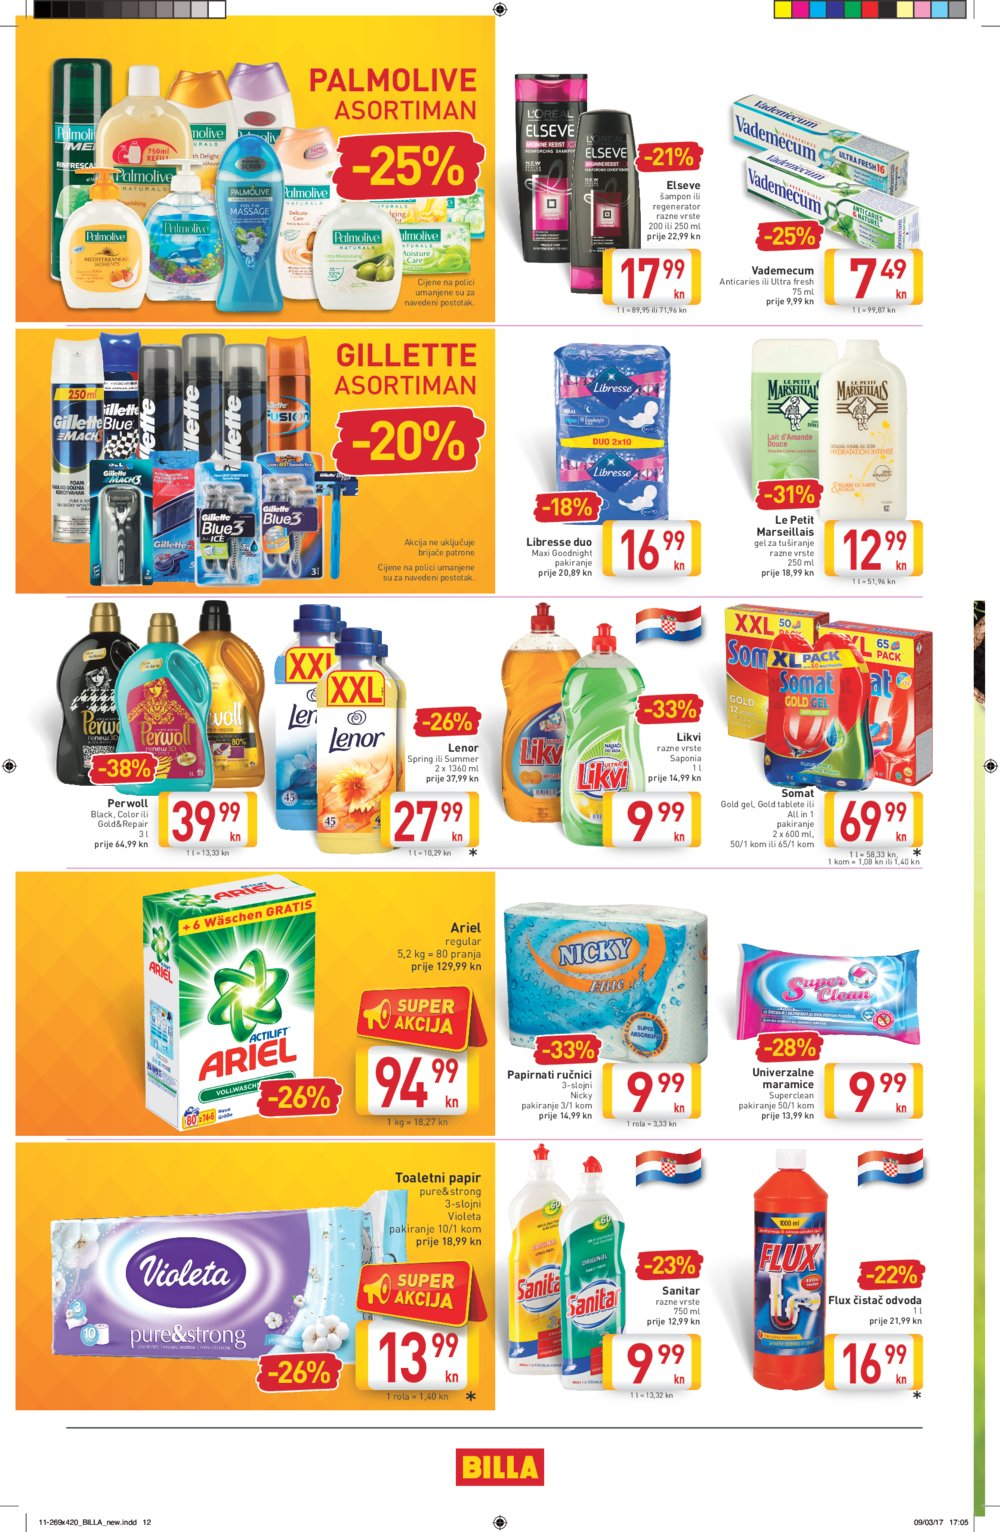 Billa katalog Akcije do 22.3.2017.